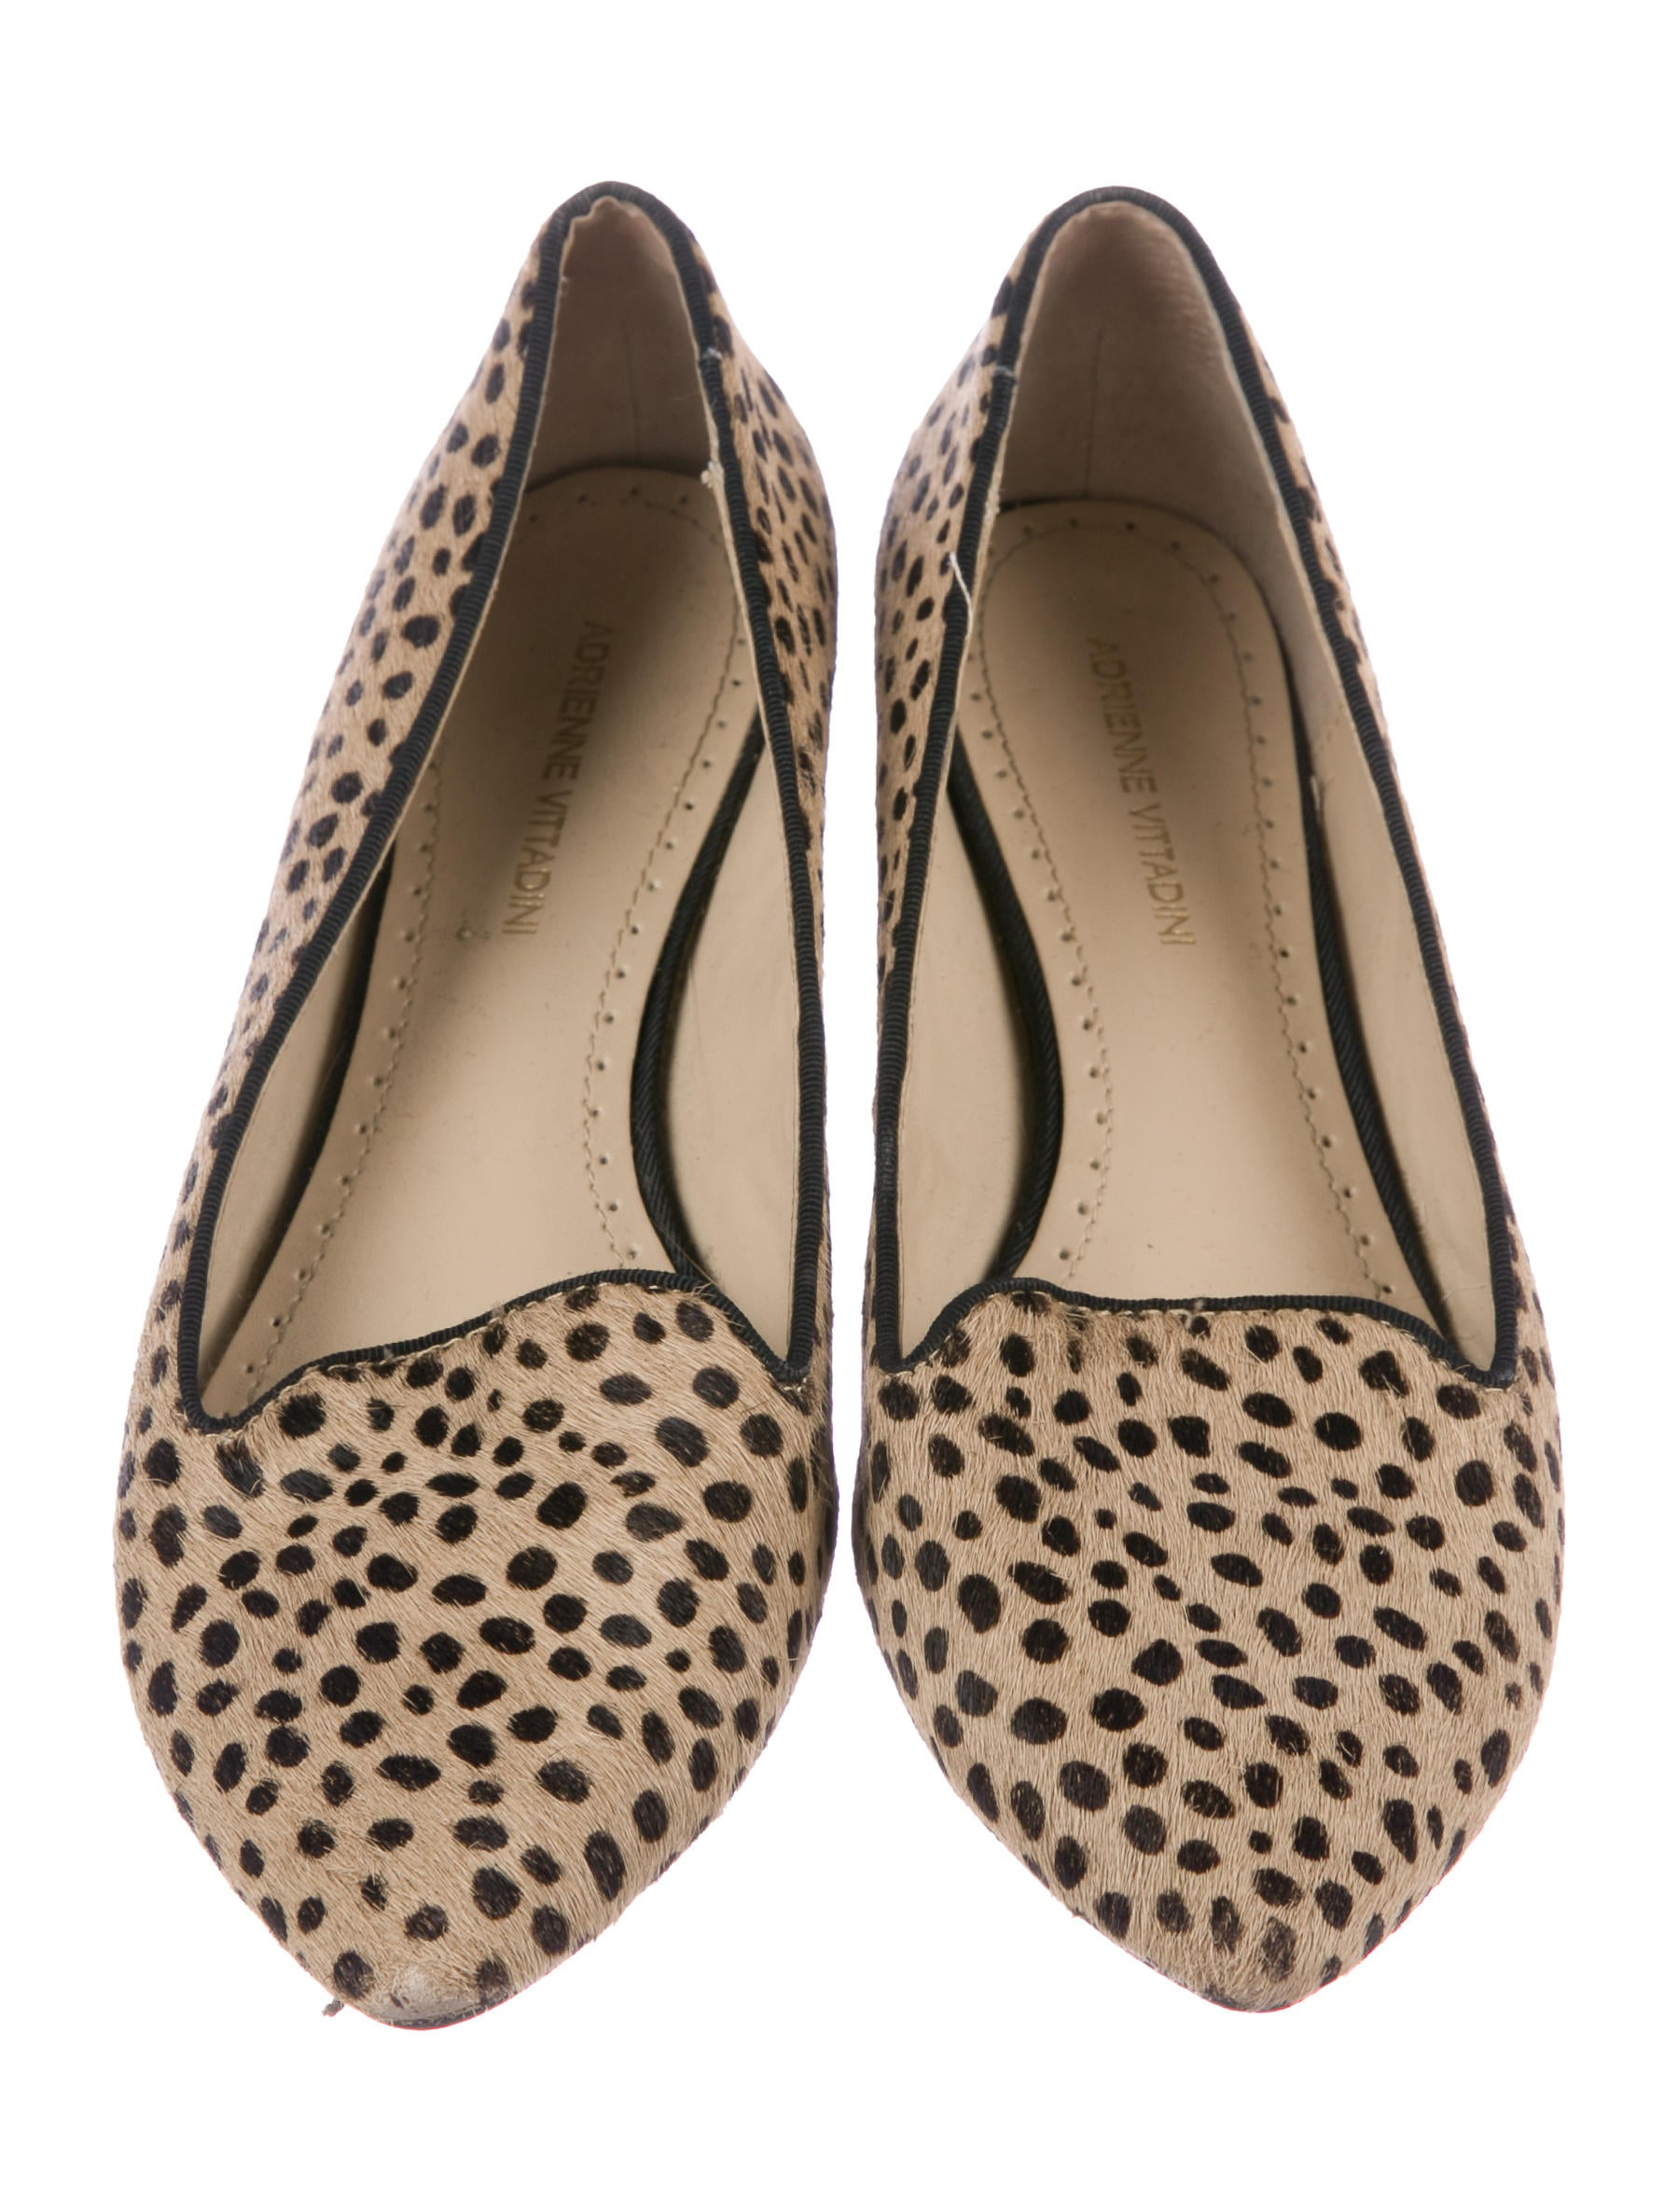 Adrienne Vittadini Ponyhair Pointed-Toe Flats best sale cheap online sale cheap prices buy cheap view bAt387Ny0G